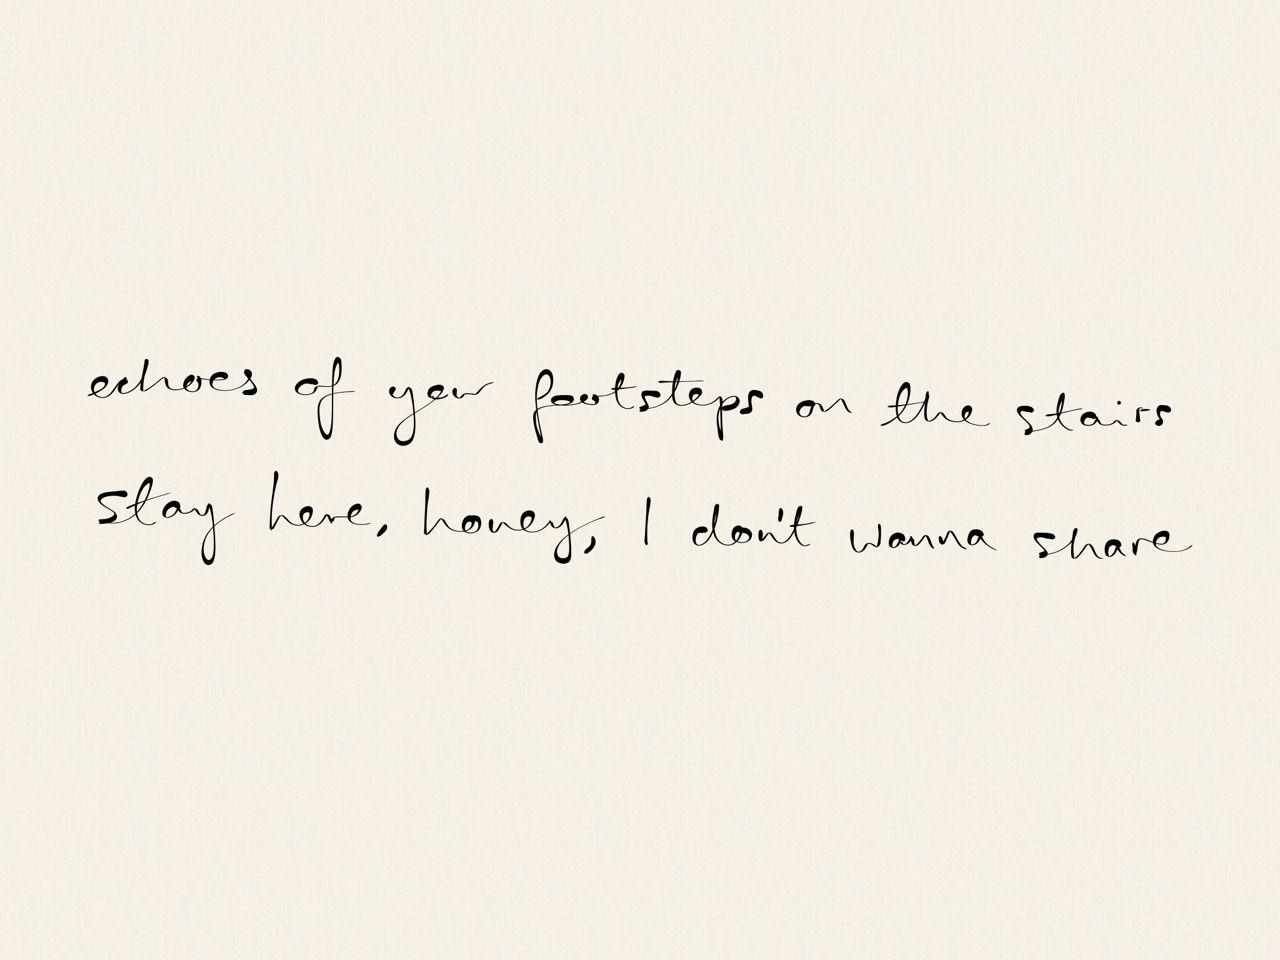 Taylor Swift - Delicate - lyrics at your disposal | FALL/WINTER ...